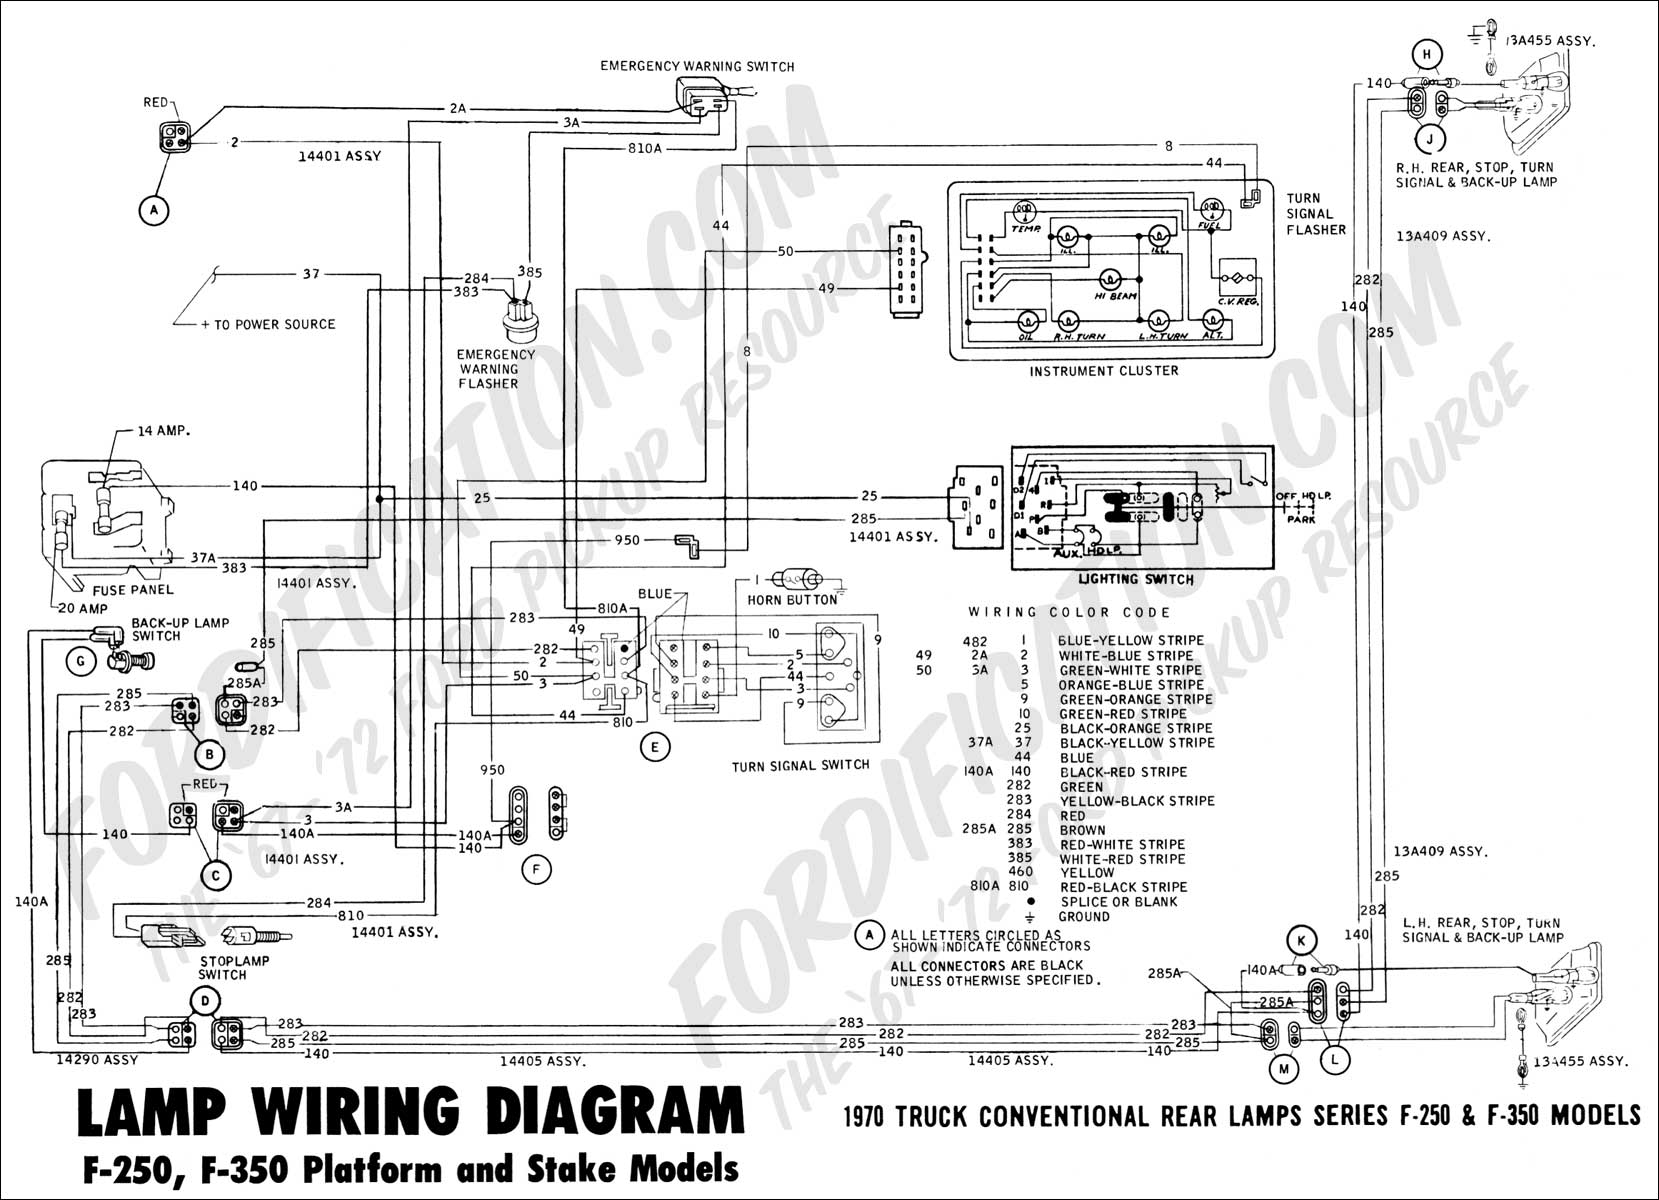 hight resolution of 1970 f 250 f 350 platform stake rear lamp wiring 01 ford truck technical drawings and schematics